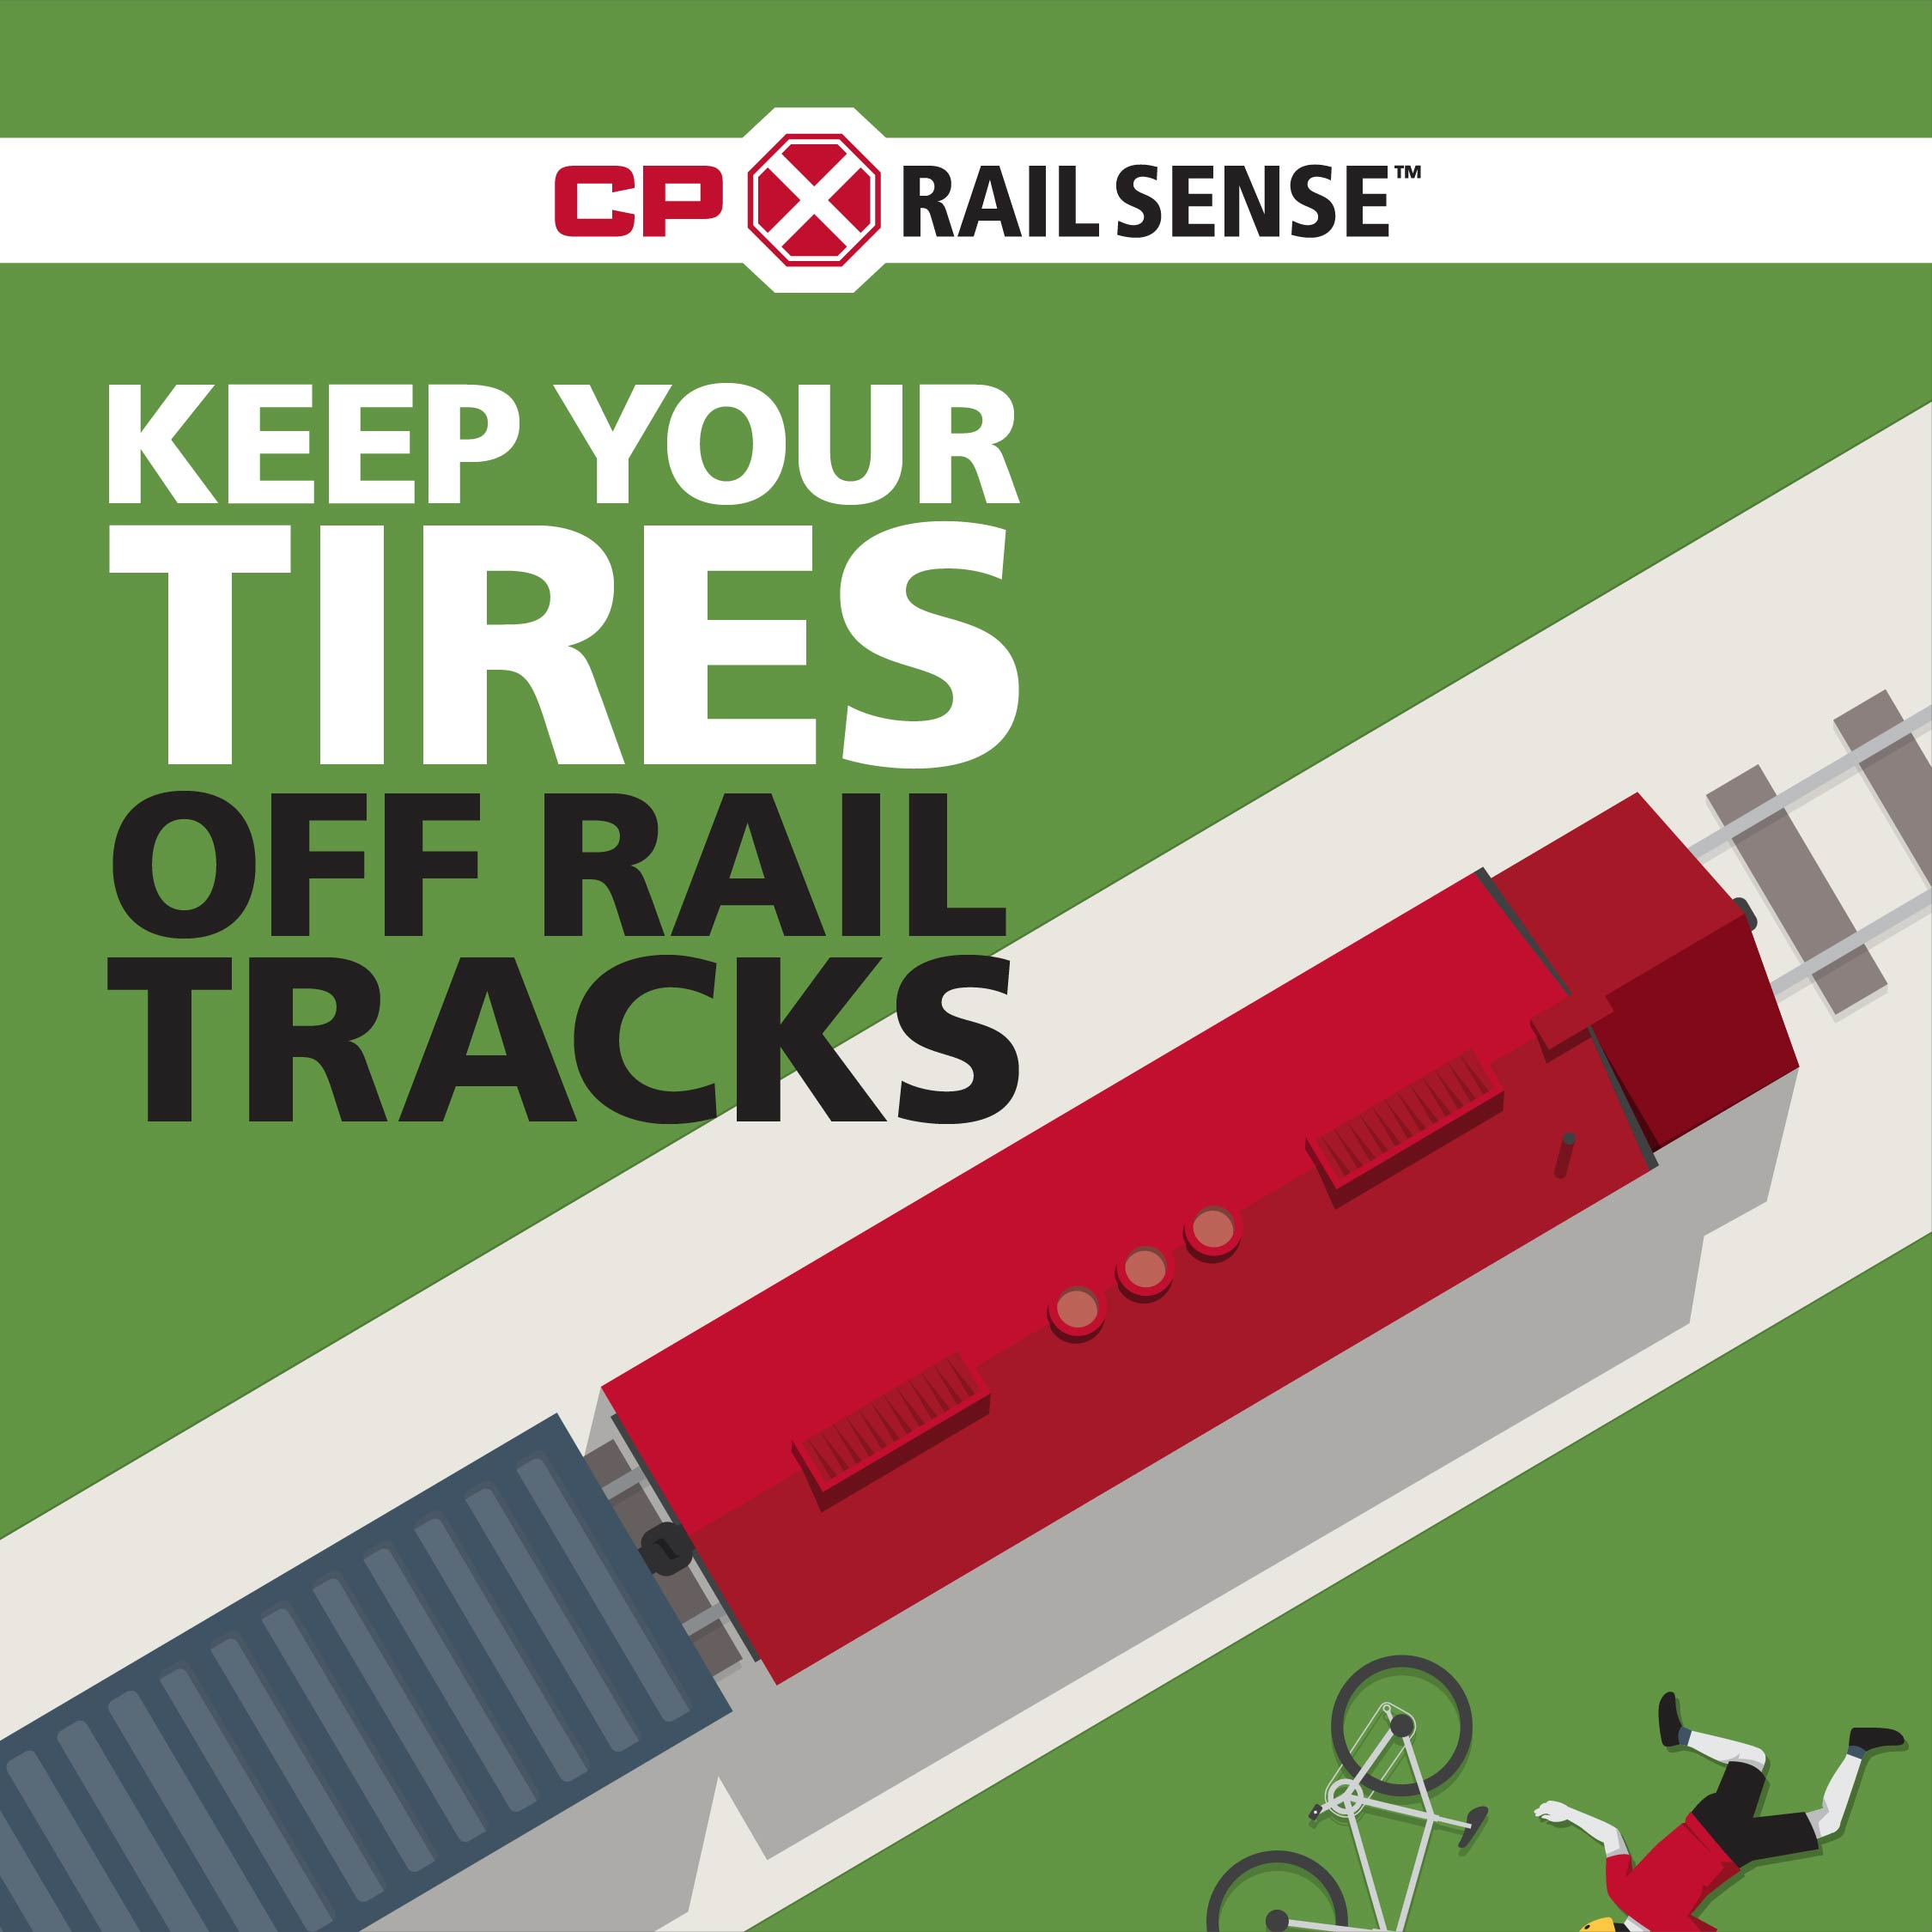 Stop Track Tragedies by having CP RailSense